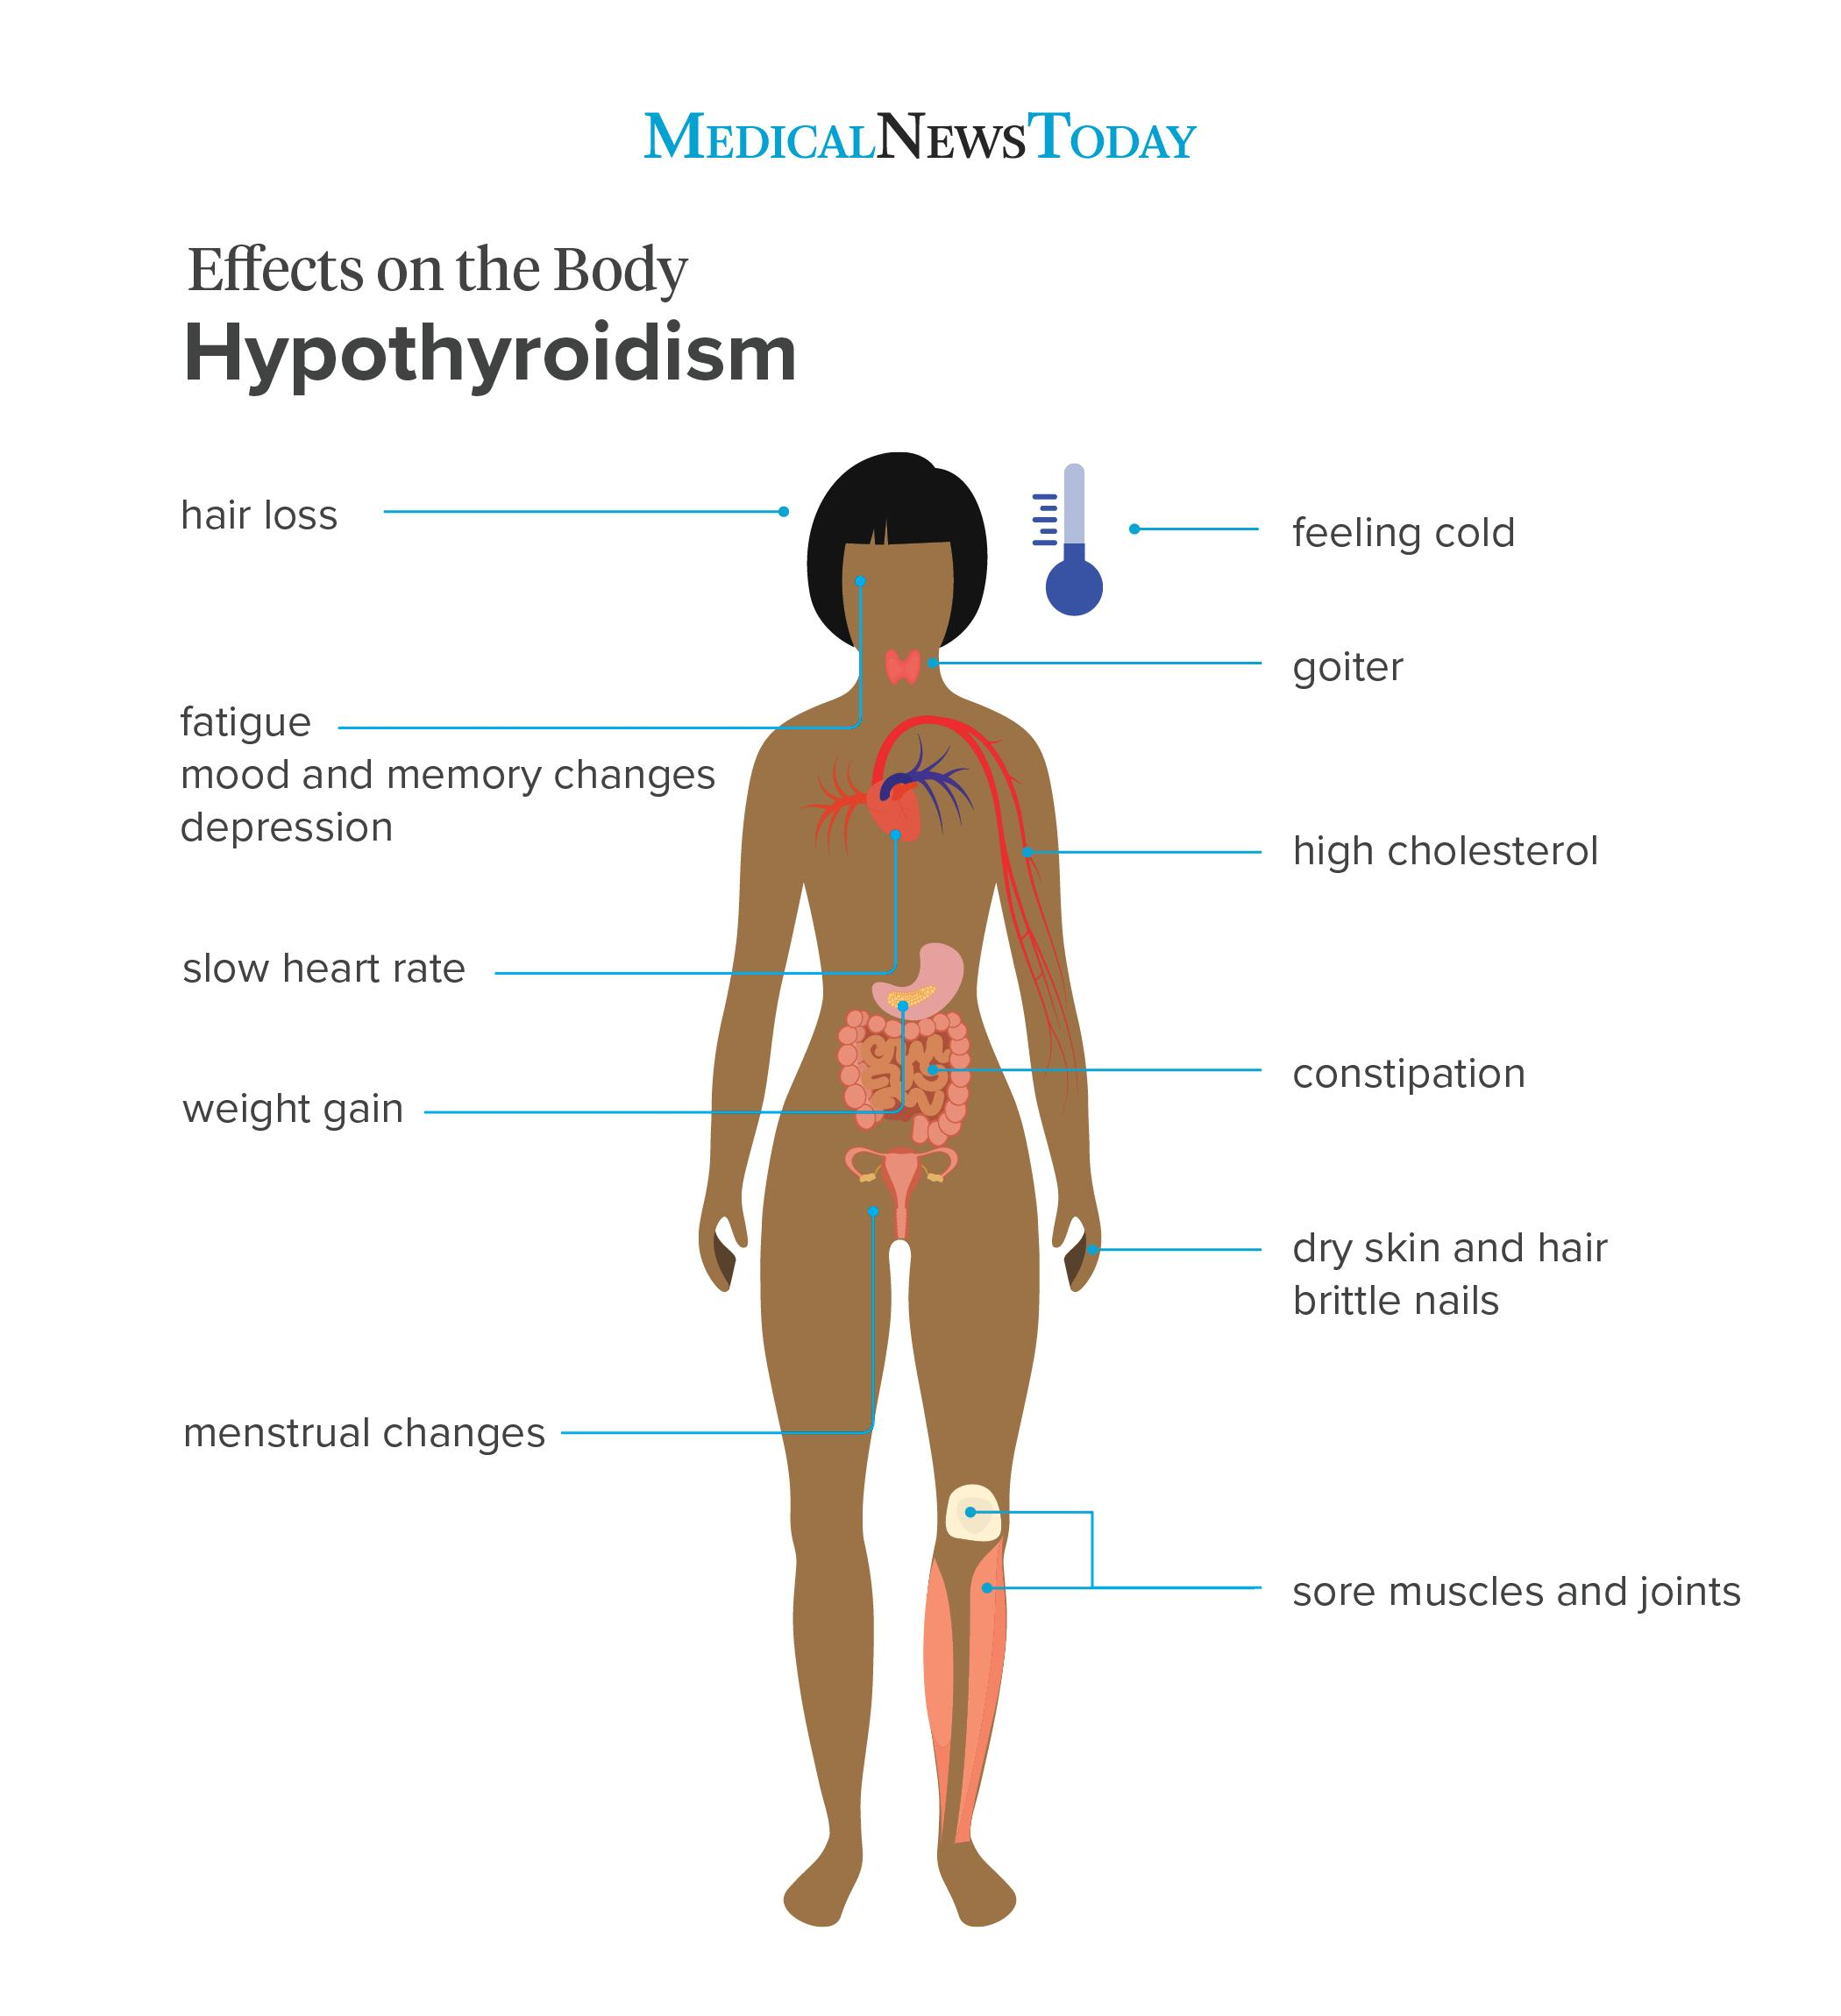 Hypothyroidism symptoms: 12 signs to look out for